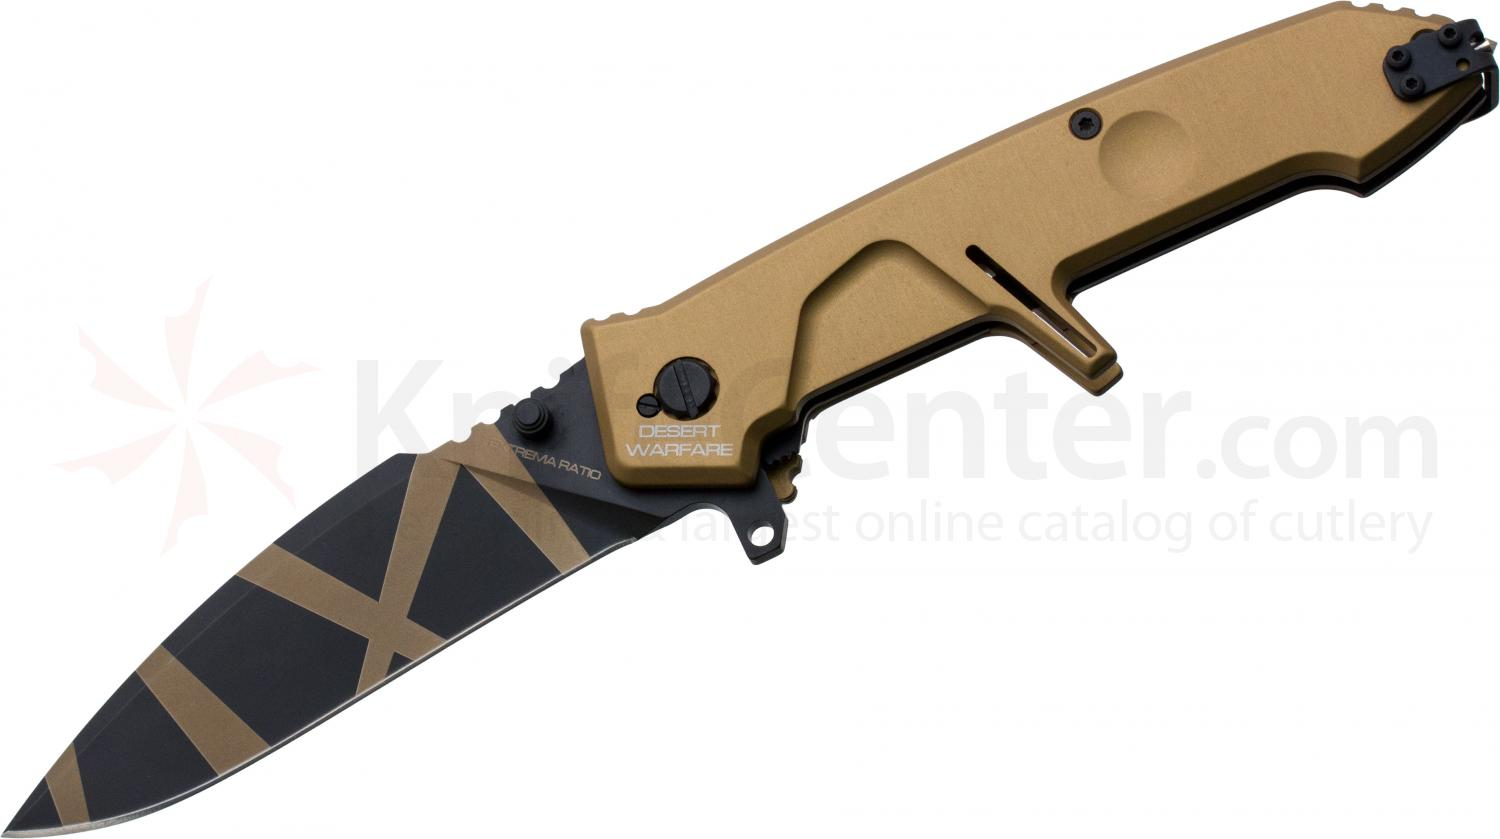 Extrema Ratio MF2 Desert Warfare Folding Knife 4.21 inch Plain N690 Blade, Tan Aluminum Handles